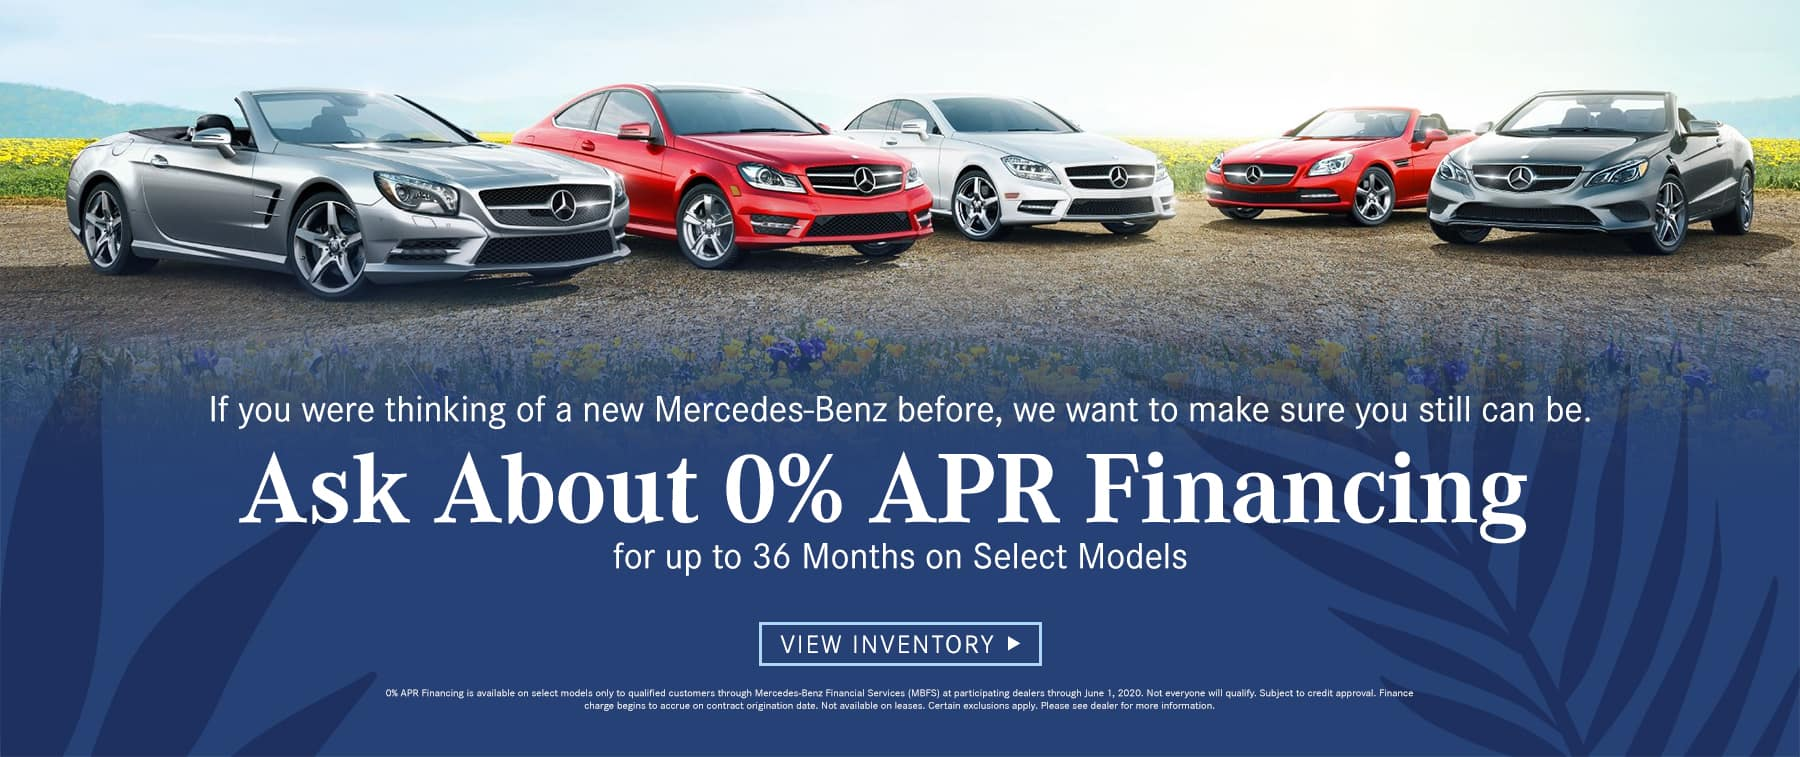 Ask about 0% APR* Financing for up to 36 Months on Select Models